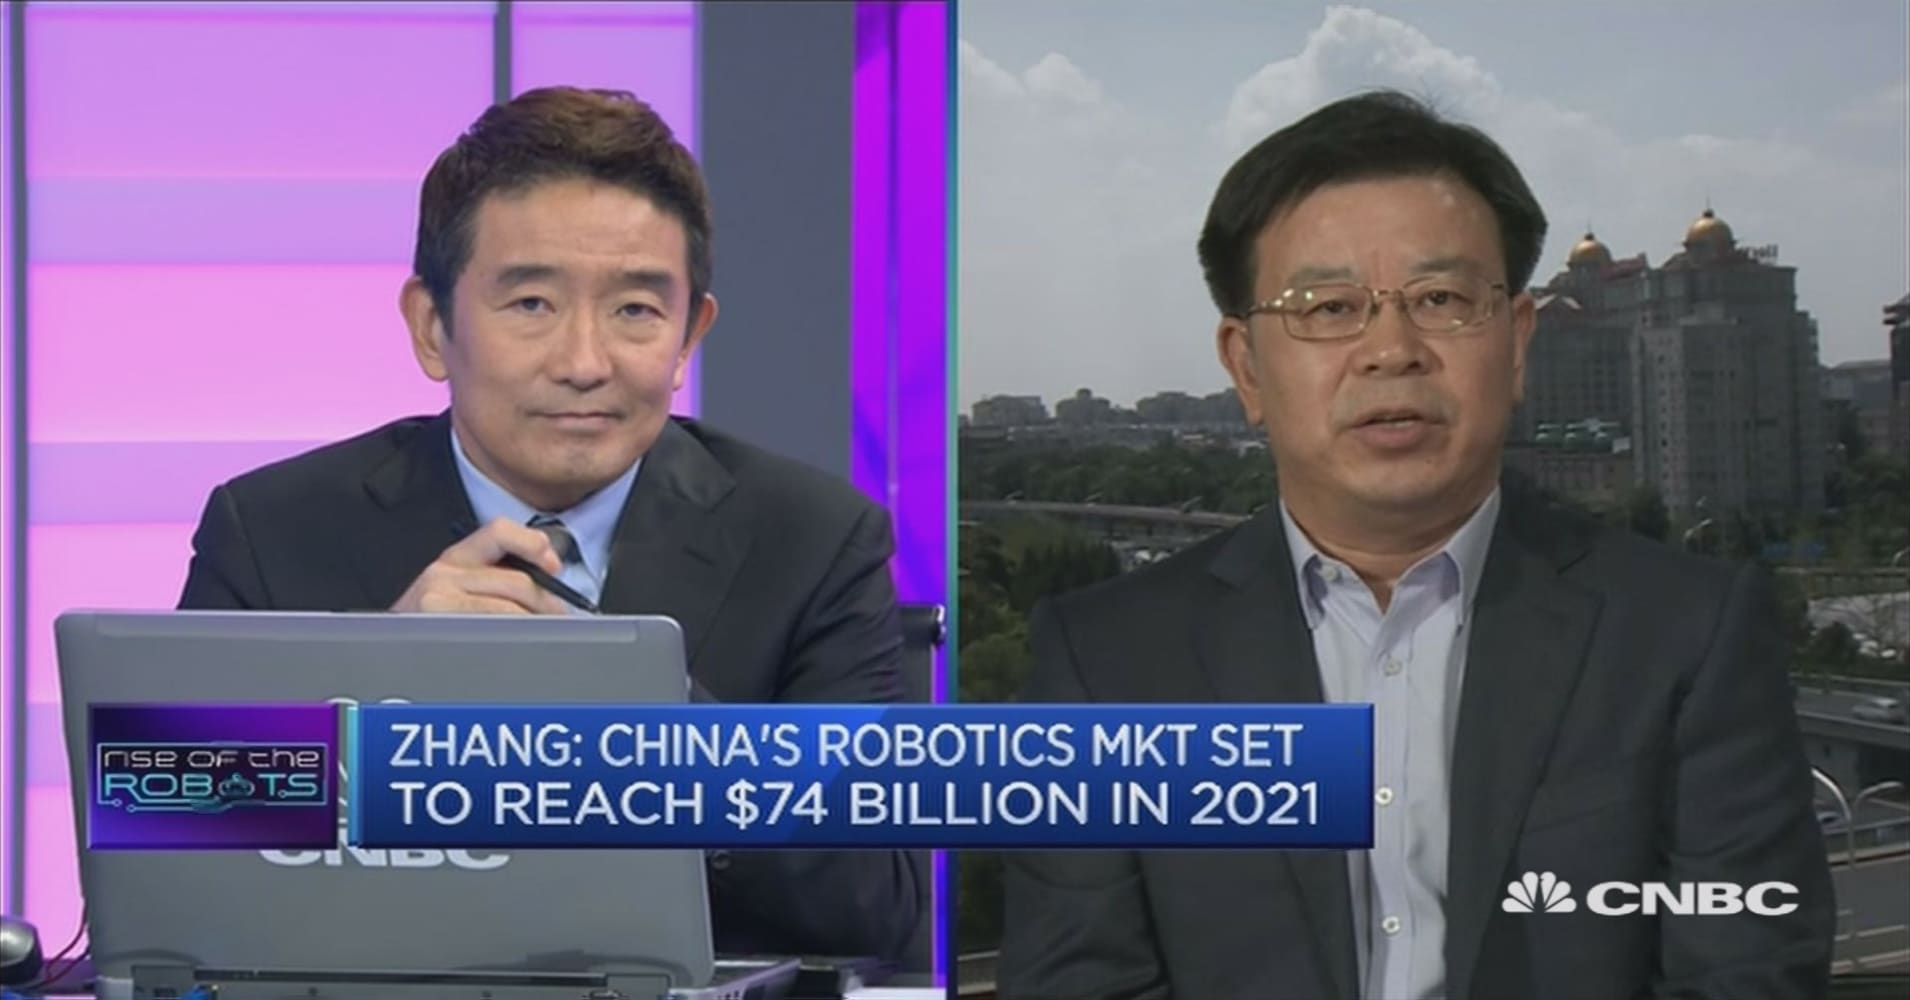 Chinas blueprint to crush the us robotics industry health care malvernweather Image collections